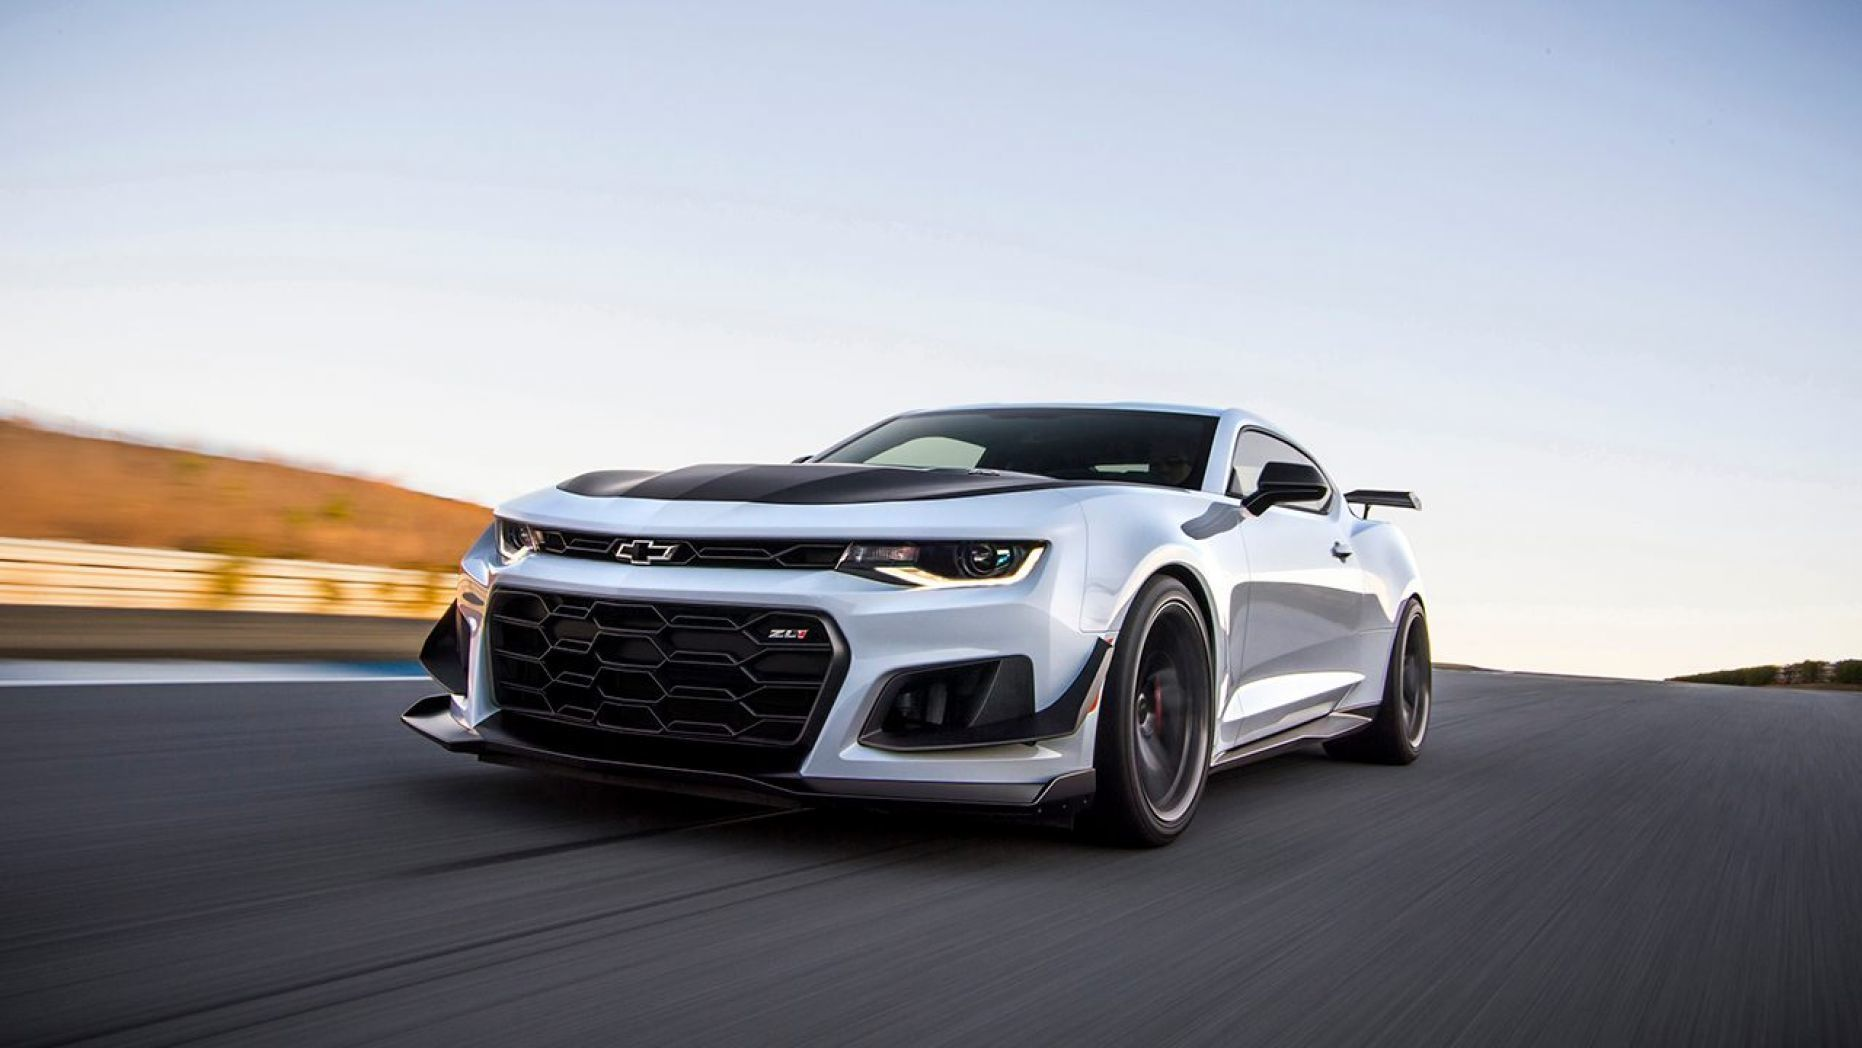 Chevy Is Giving The People What They Want A Camaro Zl1 1le With An Automatic With Images Chevrolet Camaro Zl1 Chevy Camaro Zl1 Camaro Zl1